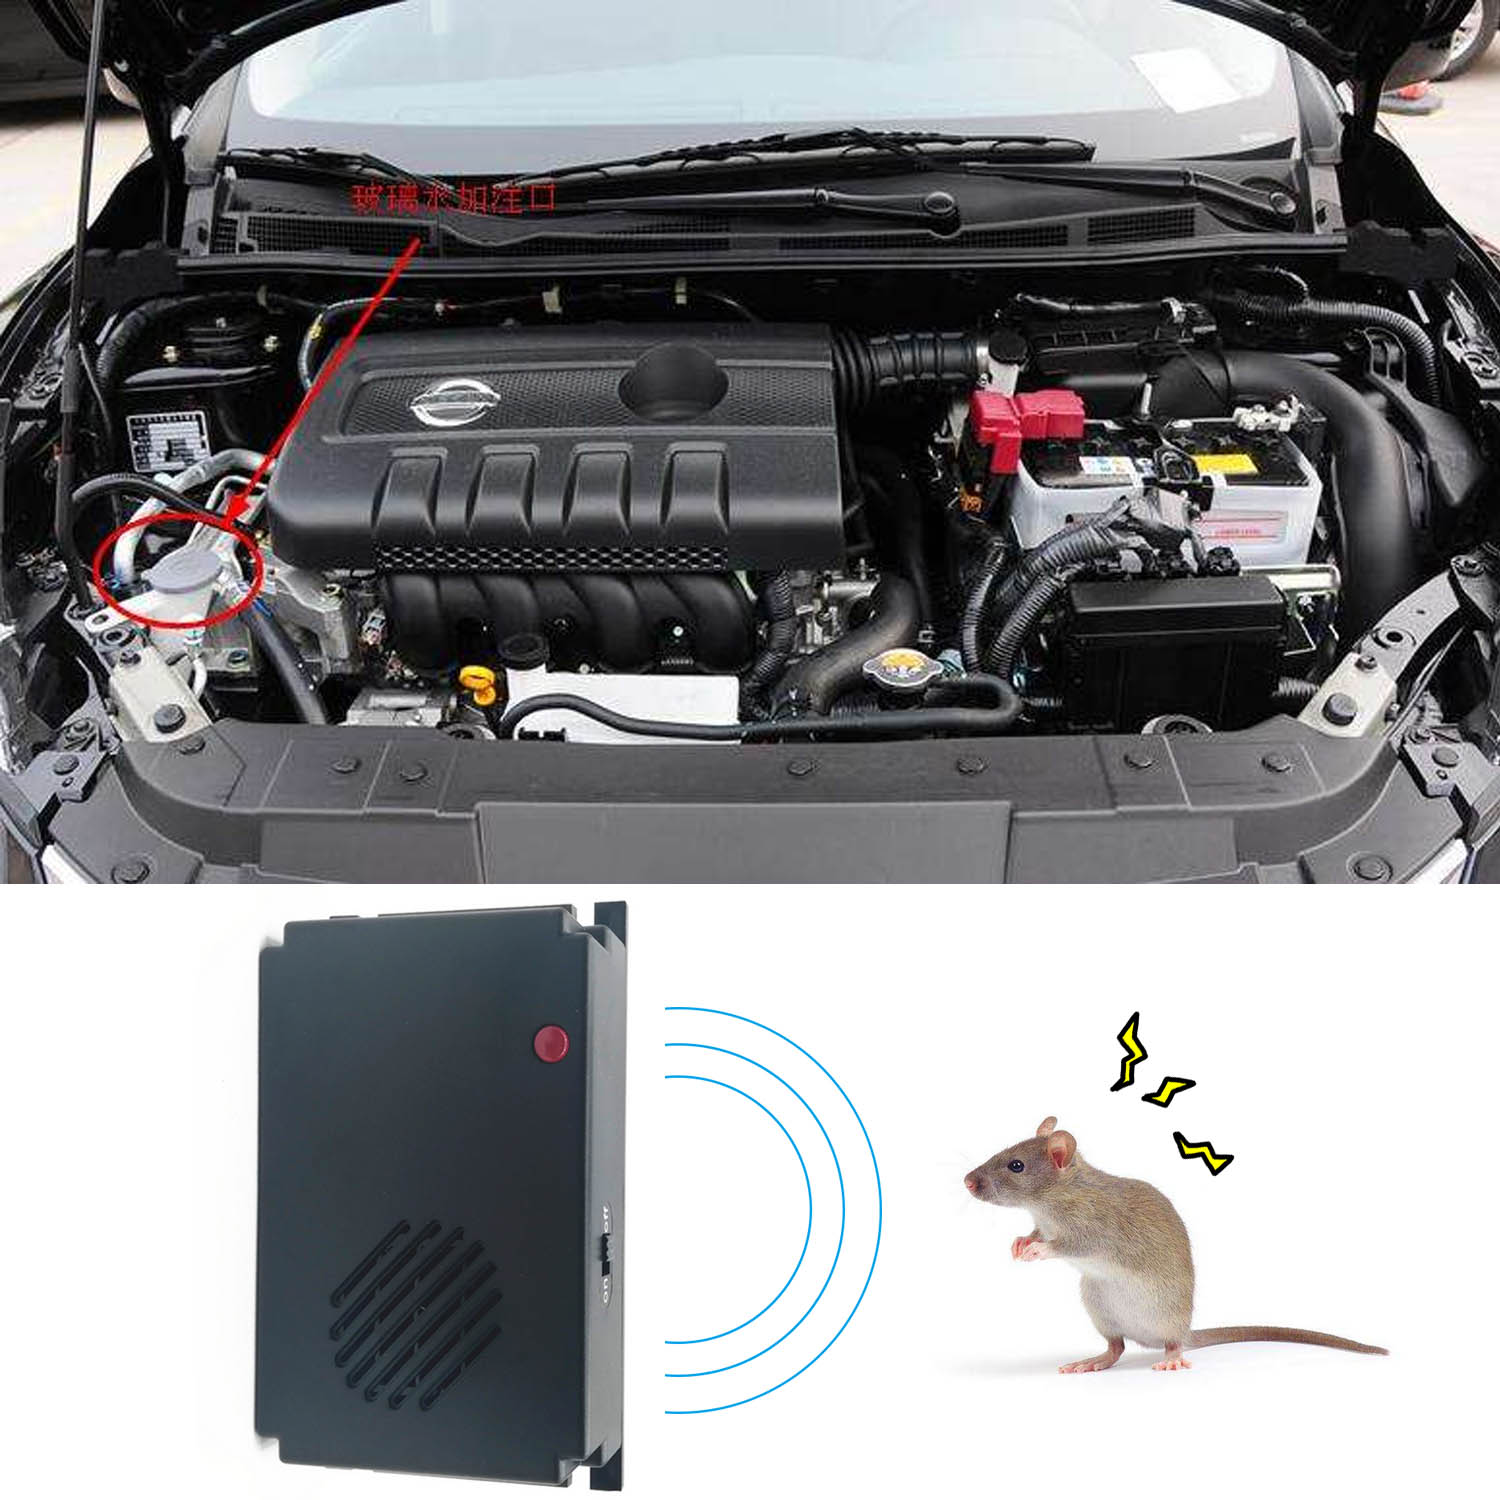 Behogar Battery Electronic Car Truck Steamer Ultrasonic Pest Control Repeller Deterrent Anti Mice Mouse Rat Rodent Cockroaches